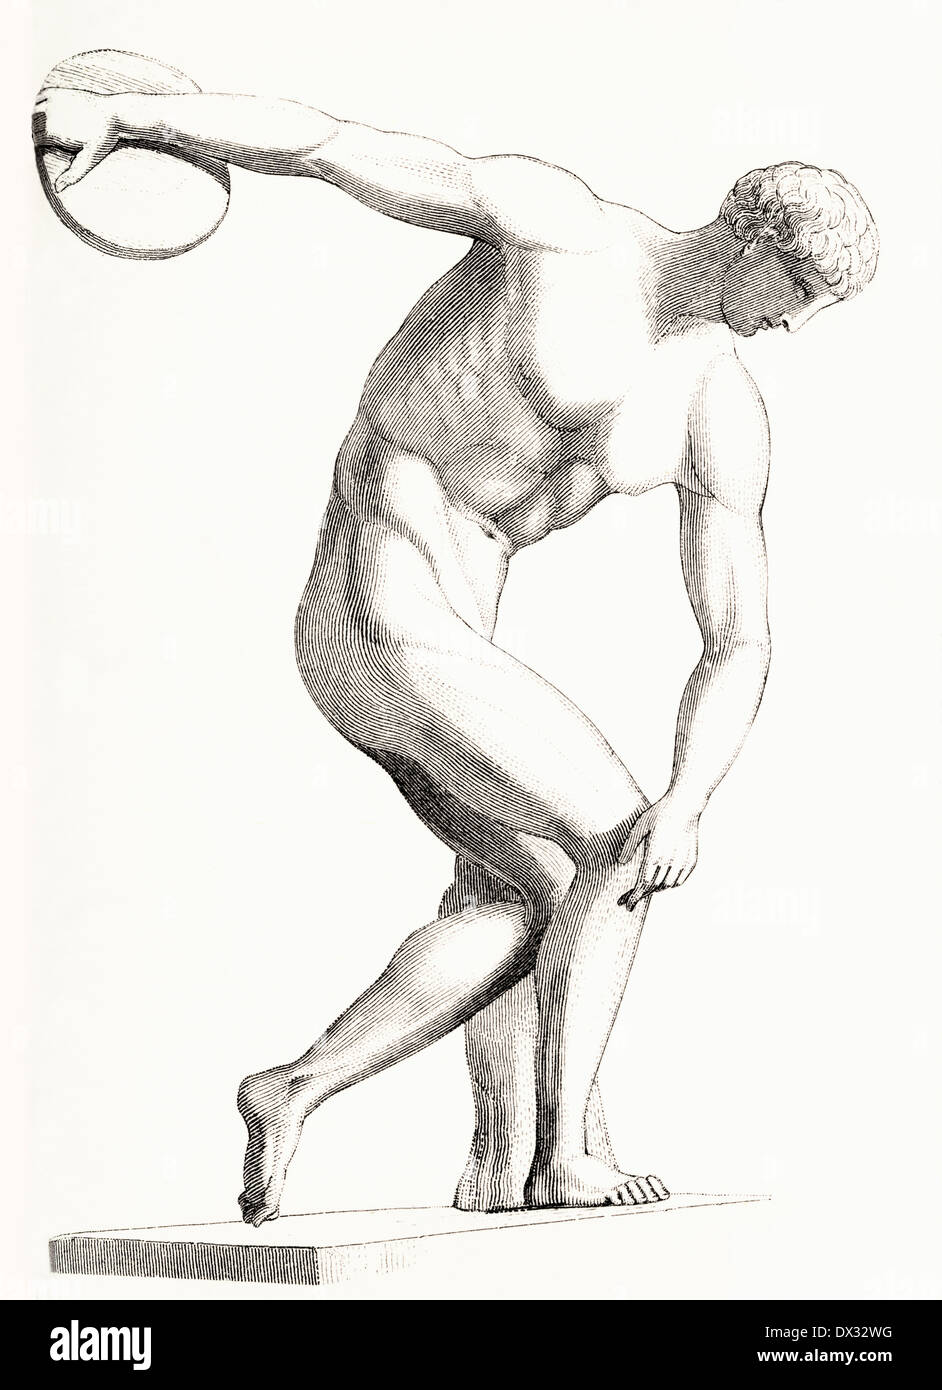 The Discobolus of Myron. Greek sculpture. - Stock Image